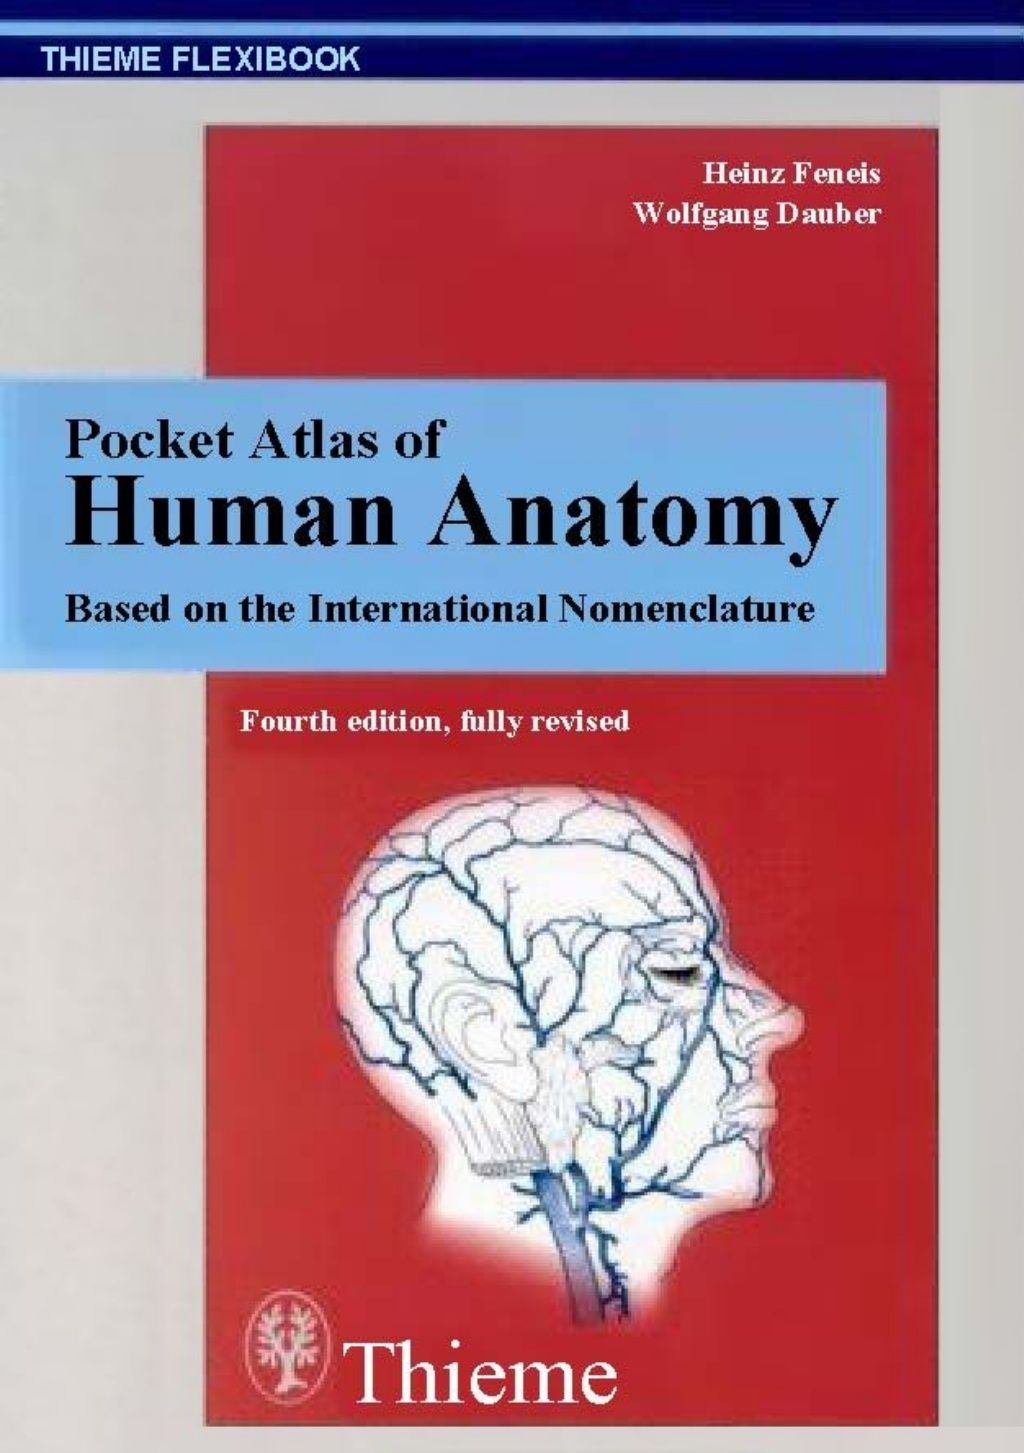 Pocket atlas of human anatomy (4th ed.) by Medical Book\'s via ...